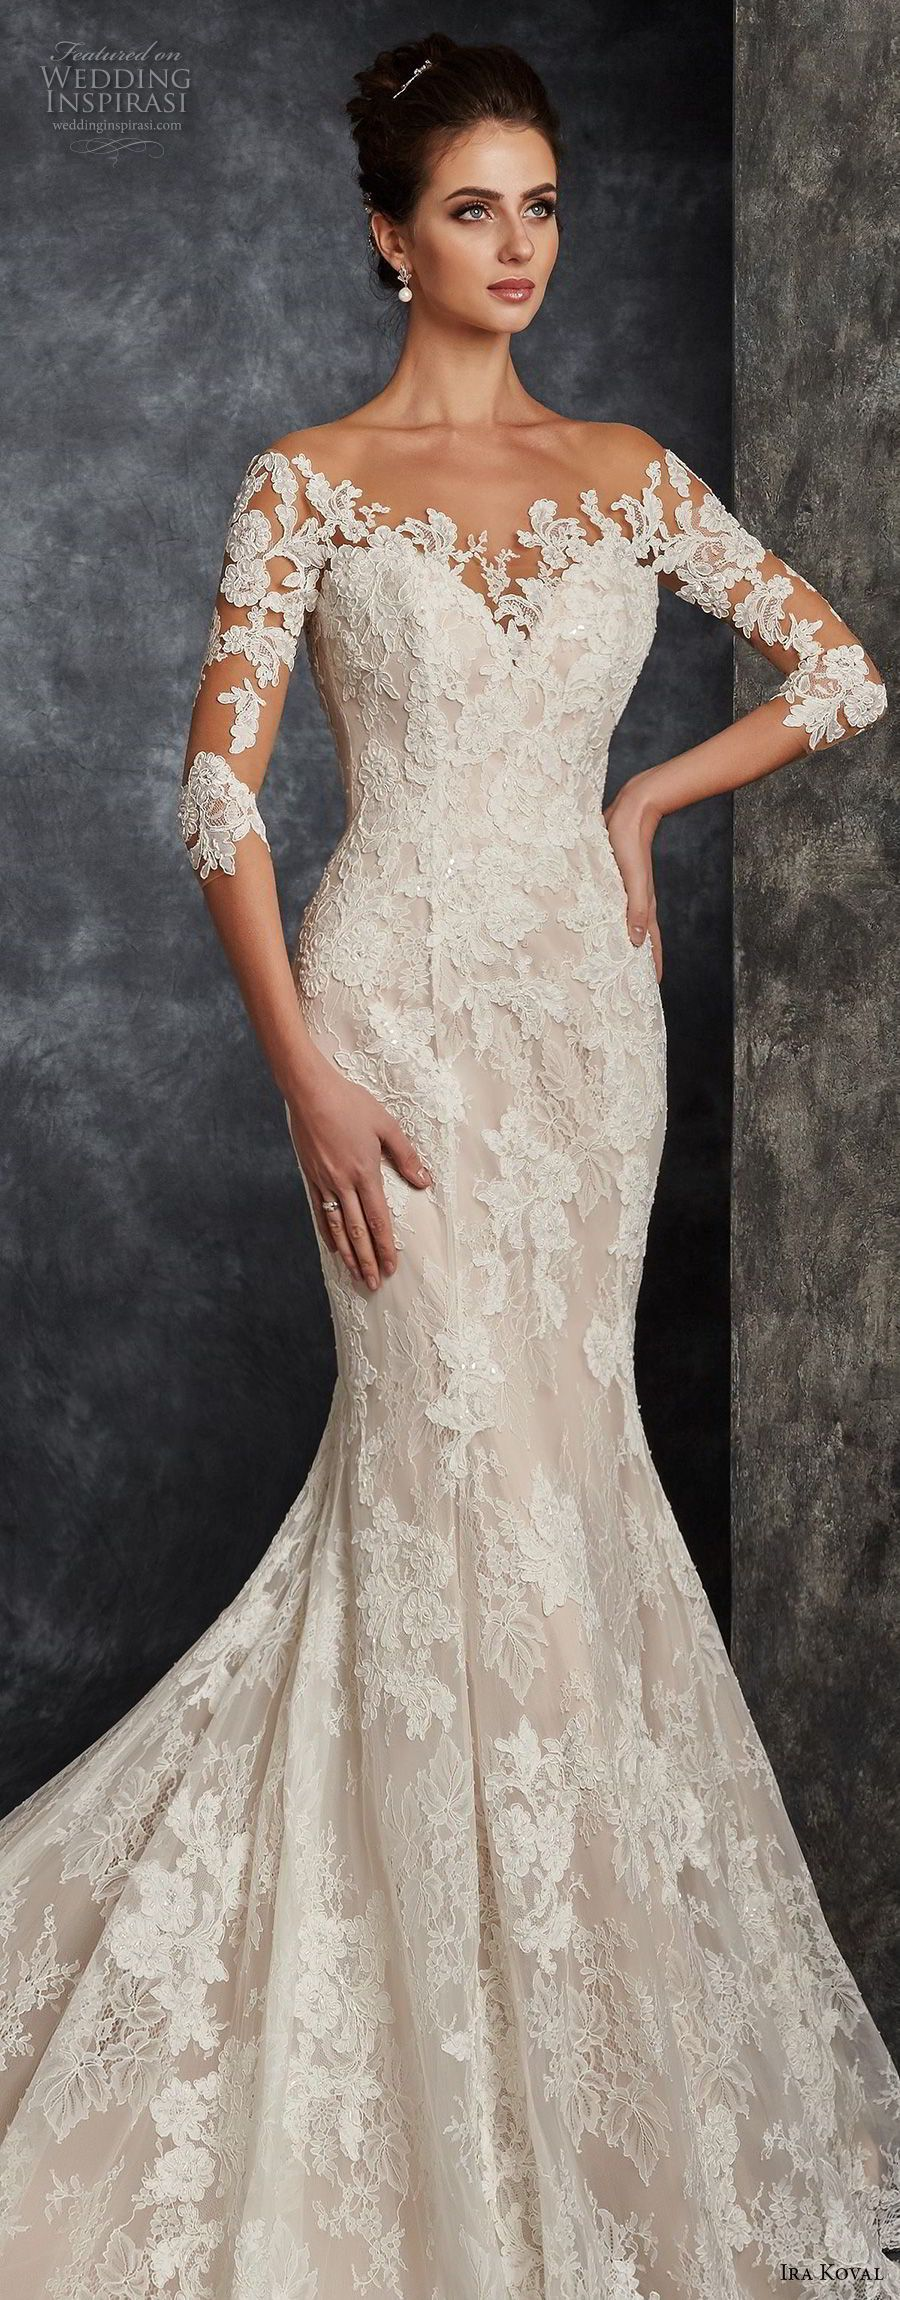 Ira koval bridal three quarter sleeves sweetheart neckline full